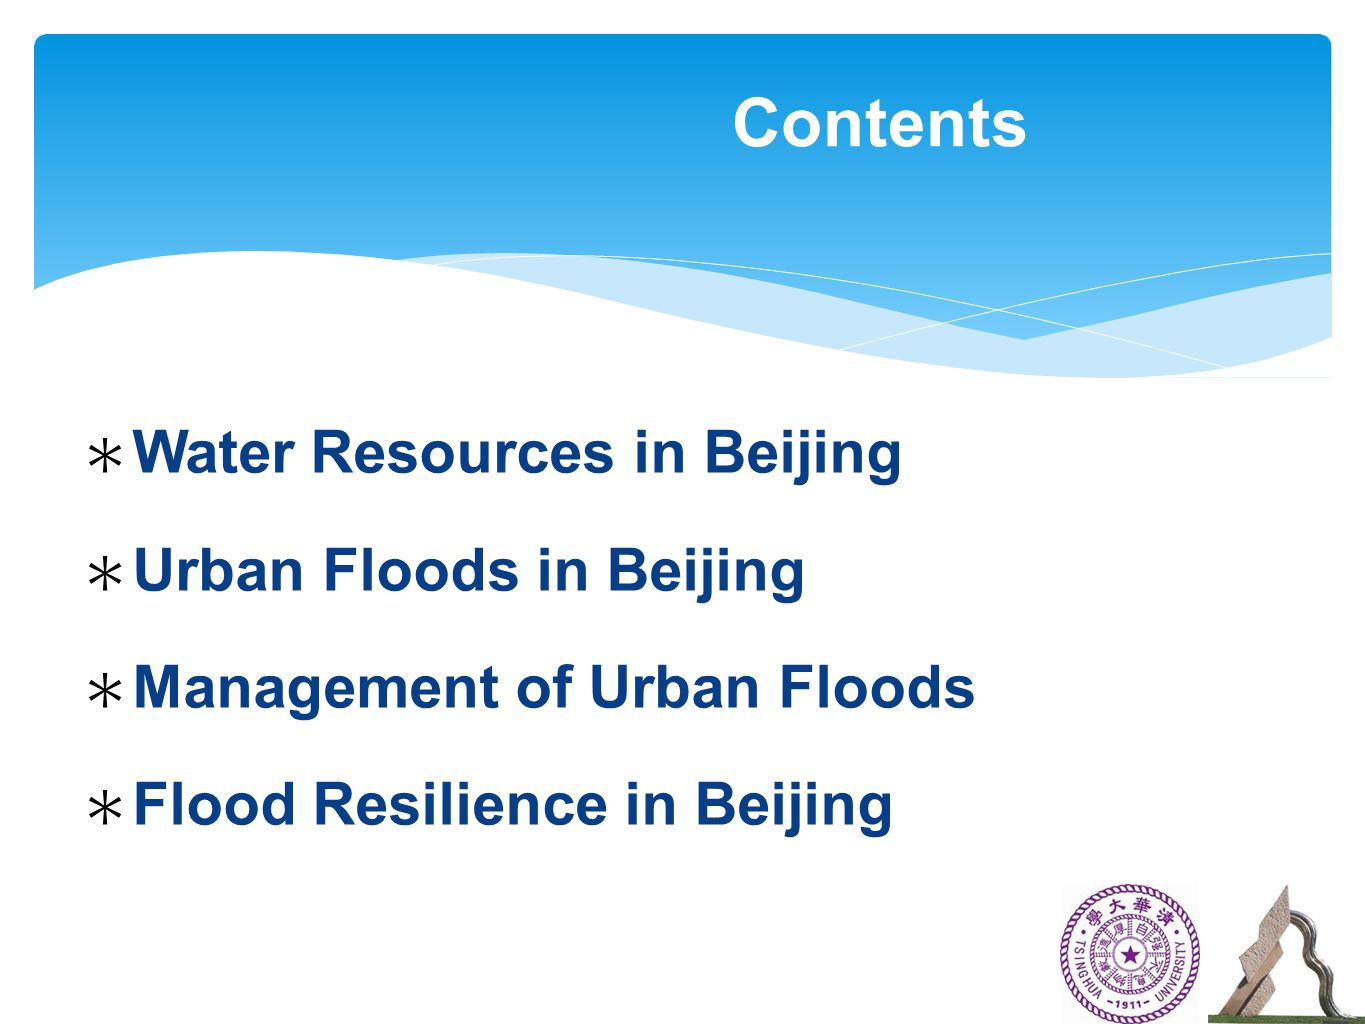 ∗ Water Resources in Beijing ∗ Urban Floodsin Beijing ∗ Management of Urban Floods ∗ Flood Resilience in Beijing Contents